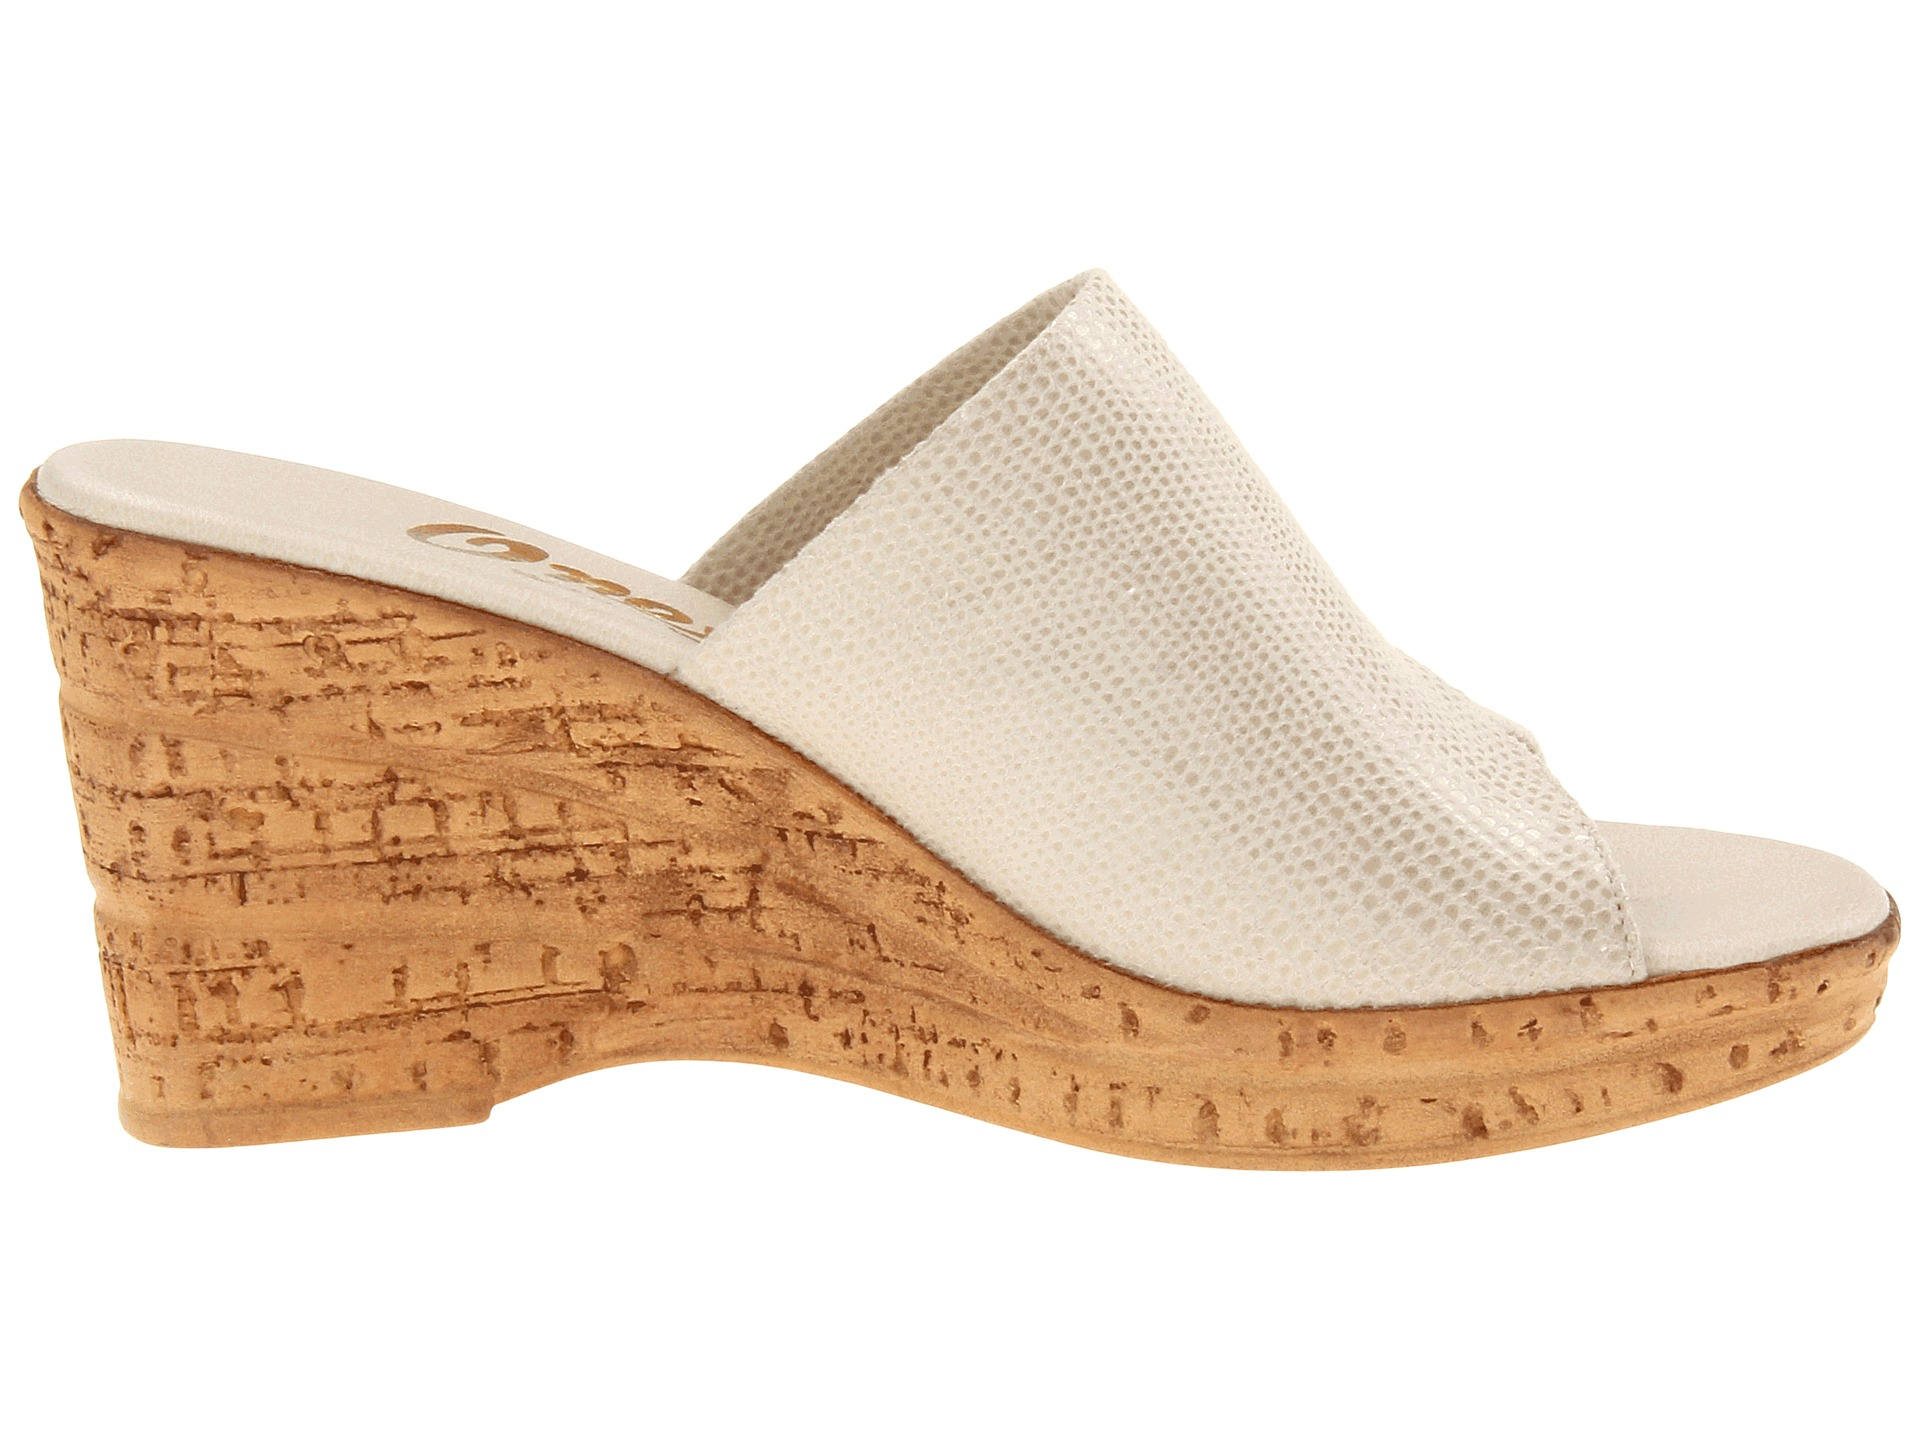 And sandals at